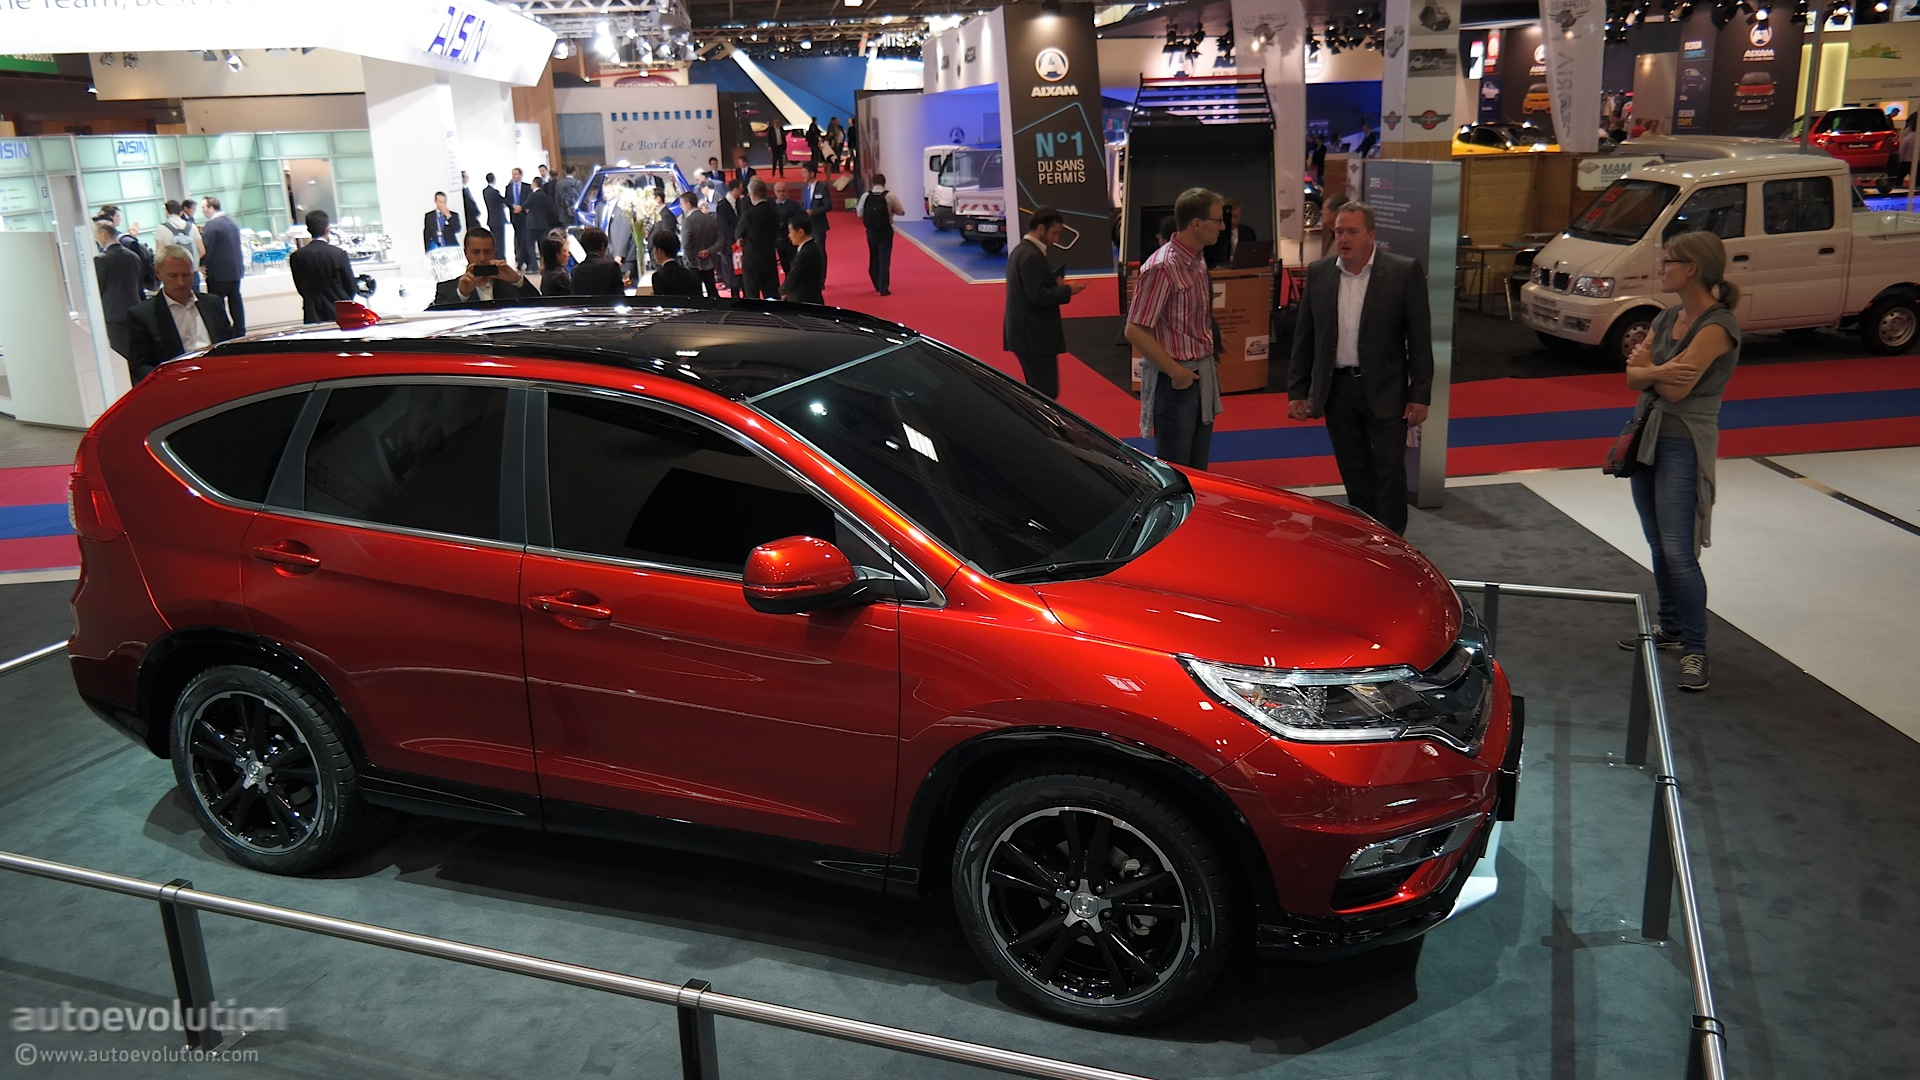 2015 Honda CR-V Brings Its 9-Speed Auto Gearbox to Paris [Live Photos] - autoevolution